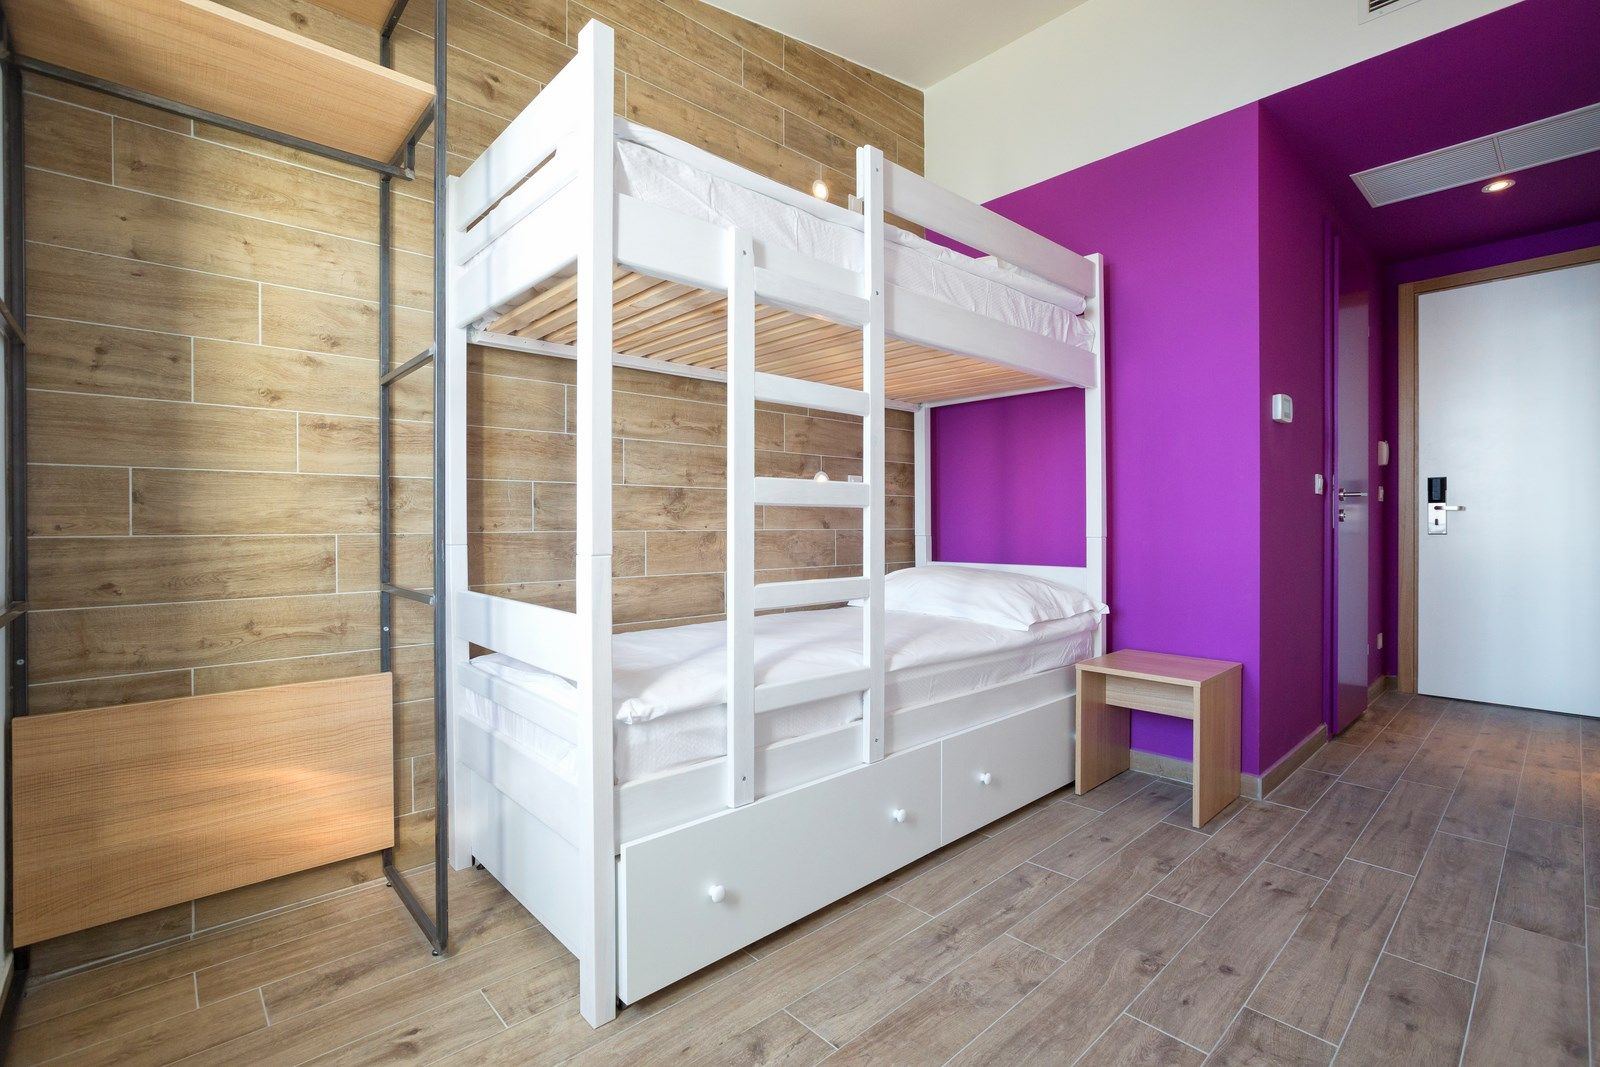 Twin Room with Bunk Beds 14 m² Courtyard/Garden View